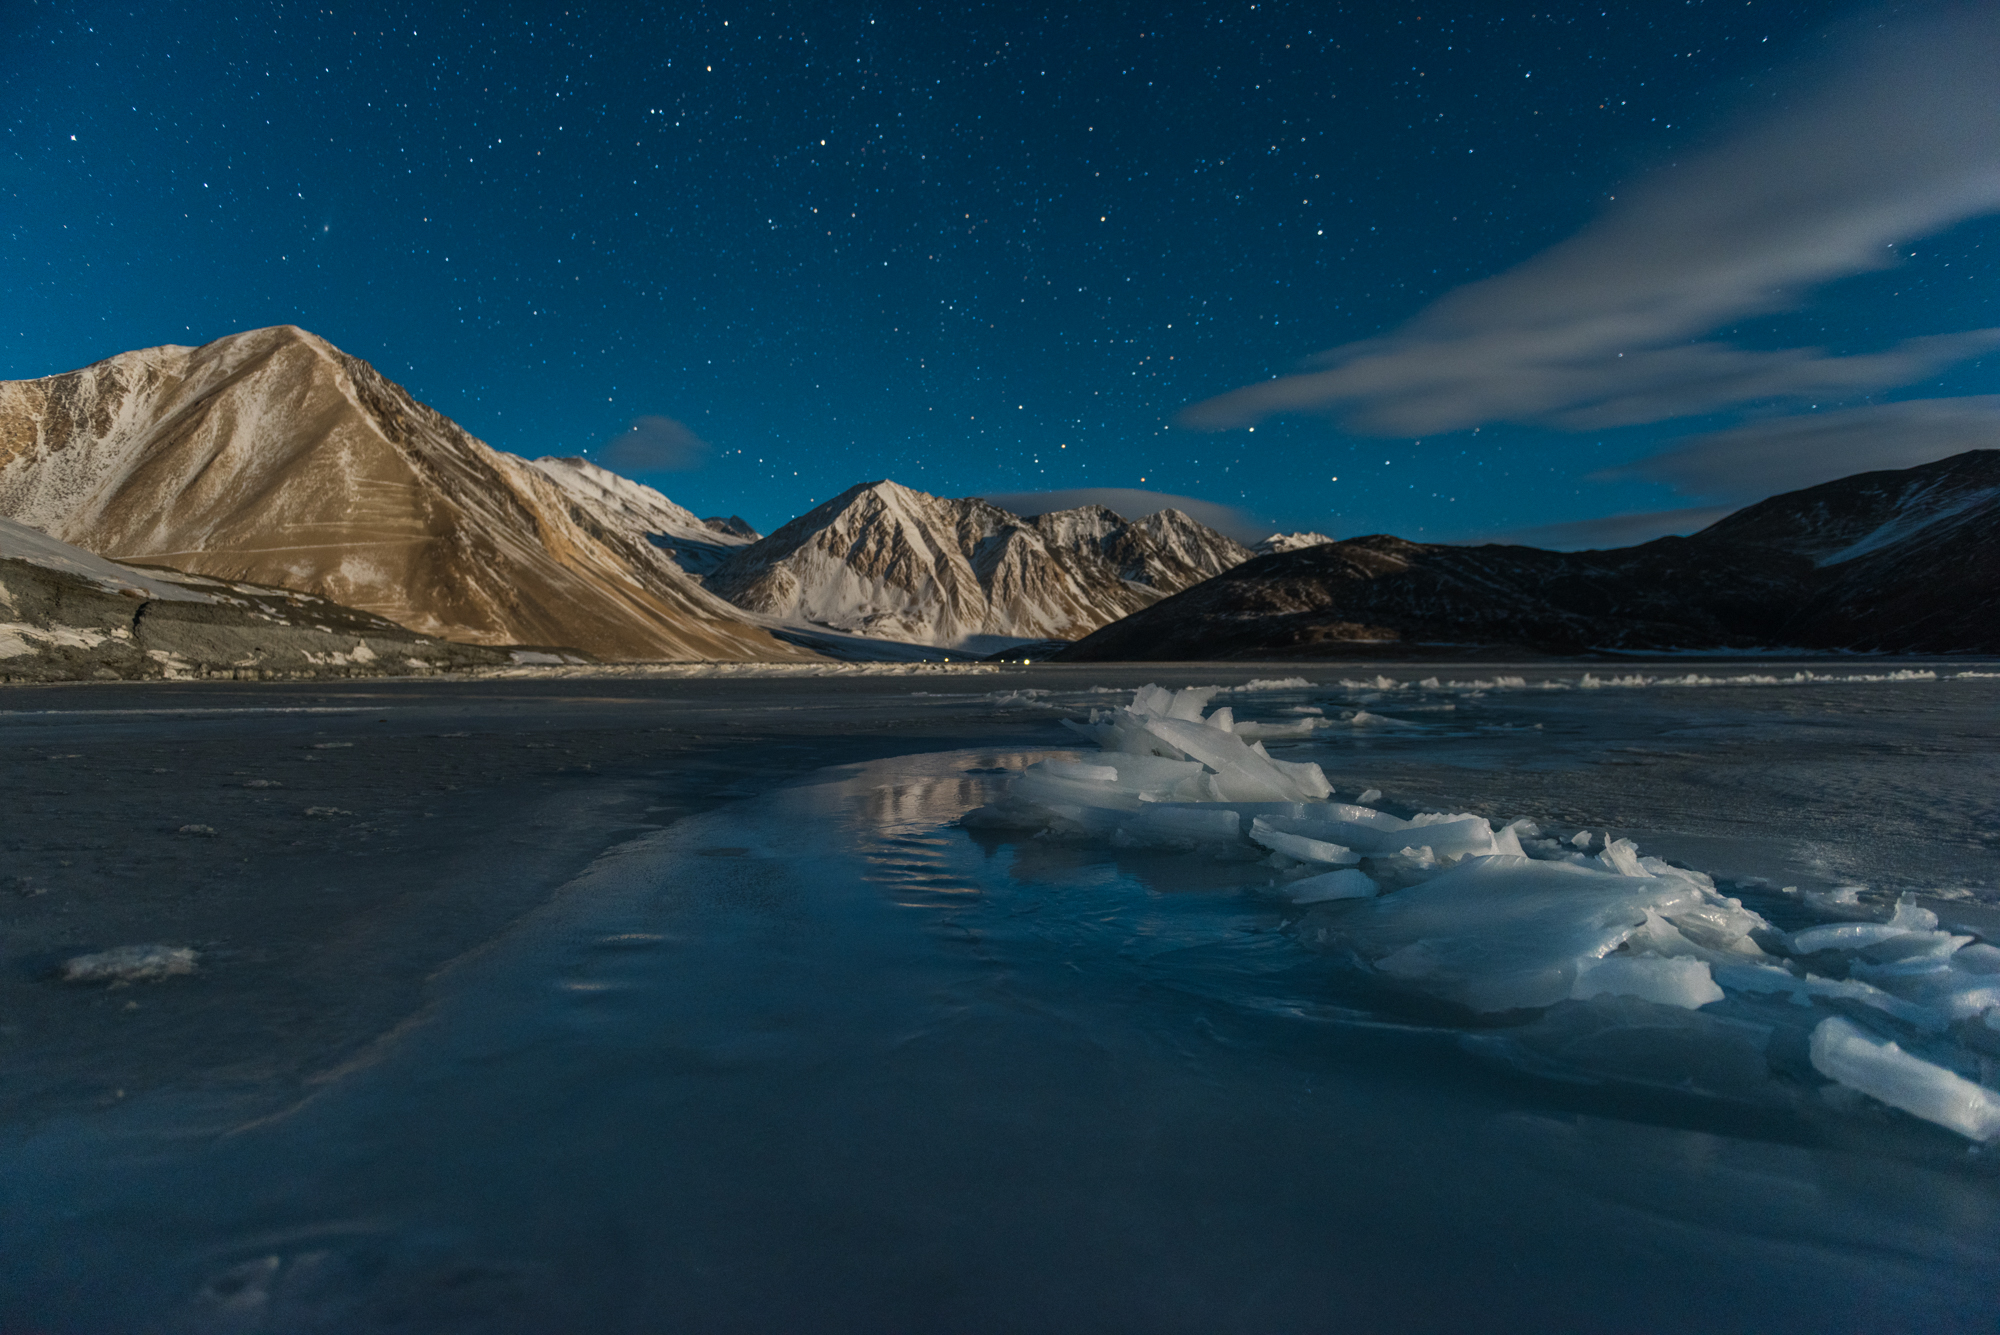 Winter Photography Workshop Tour to Ladakh